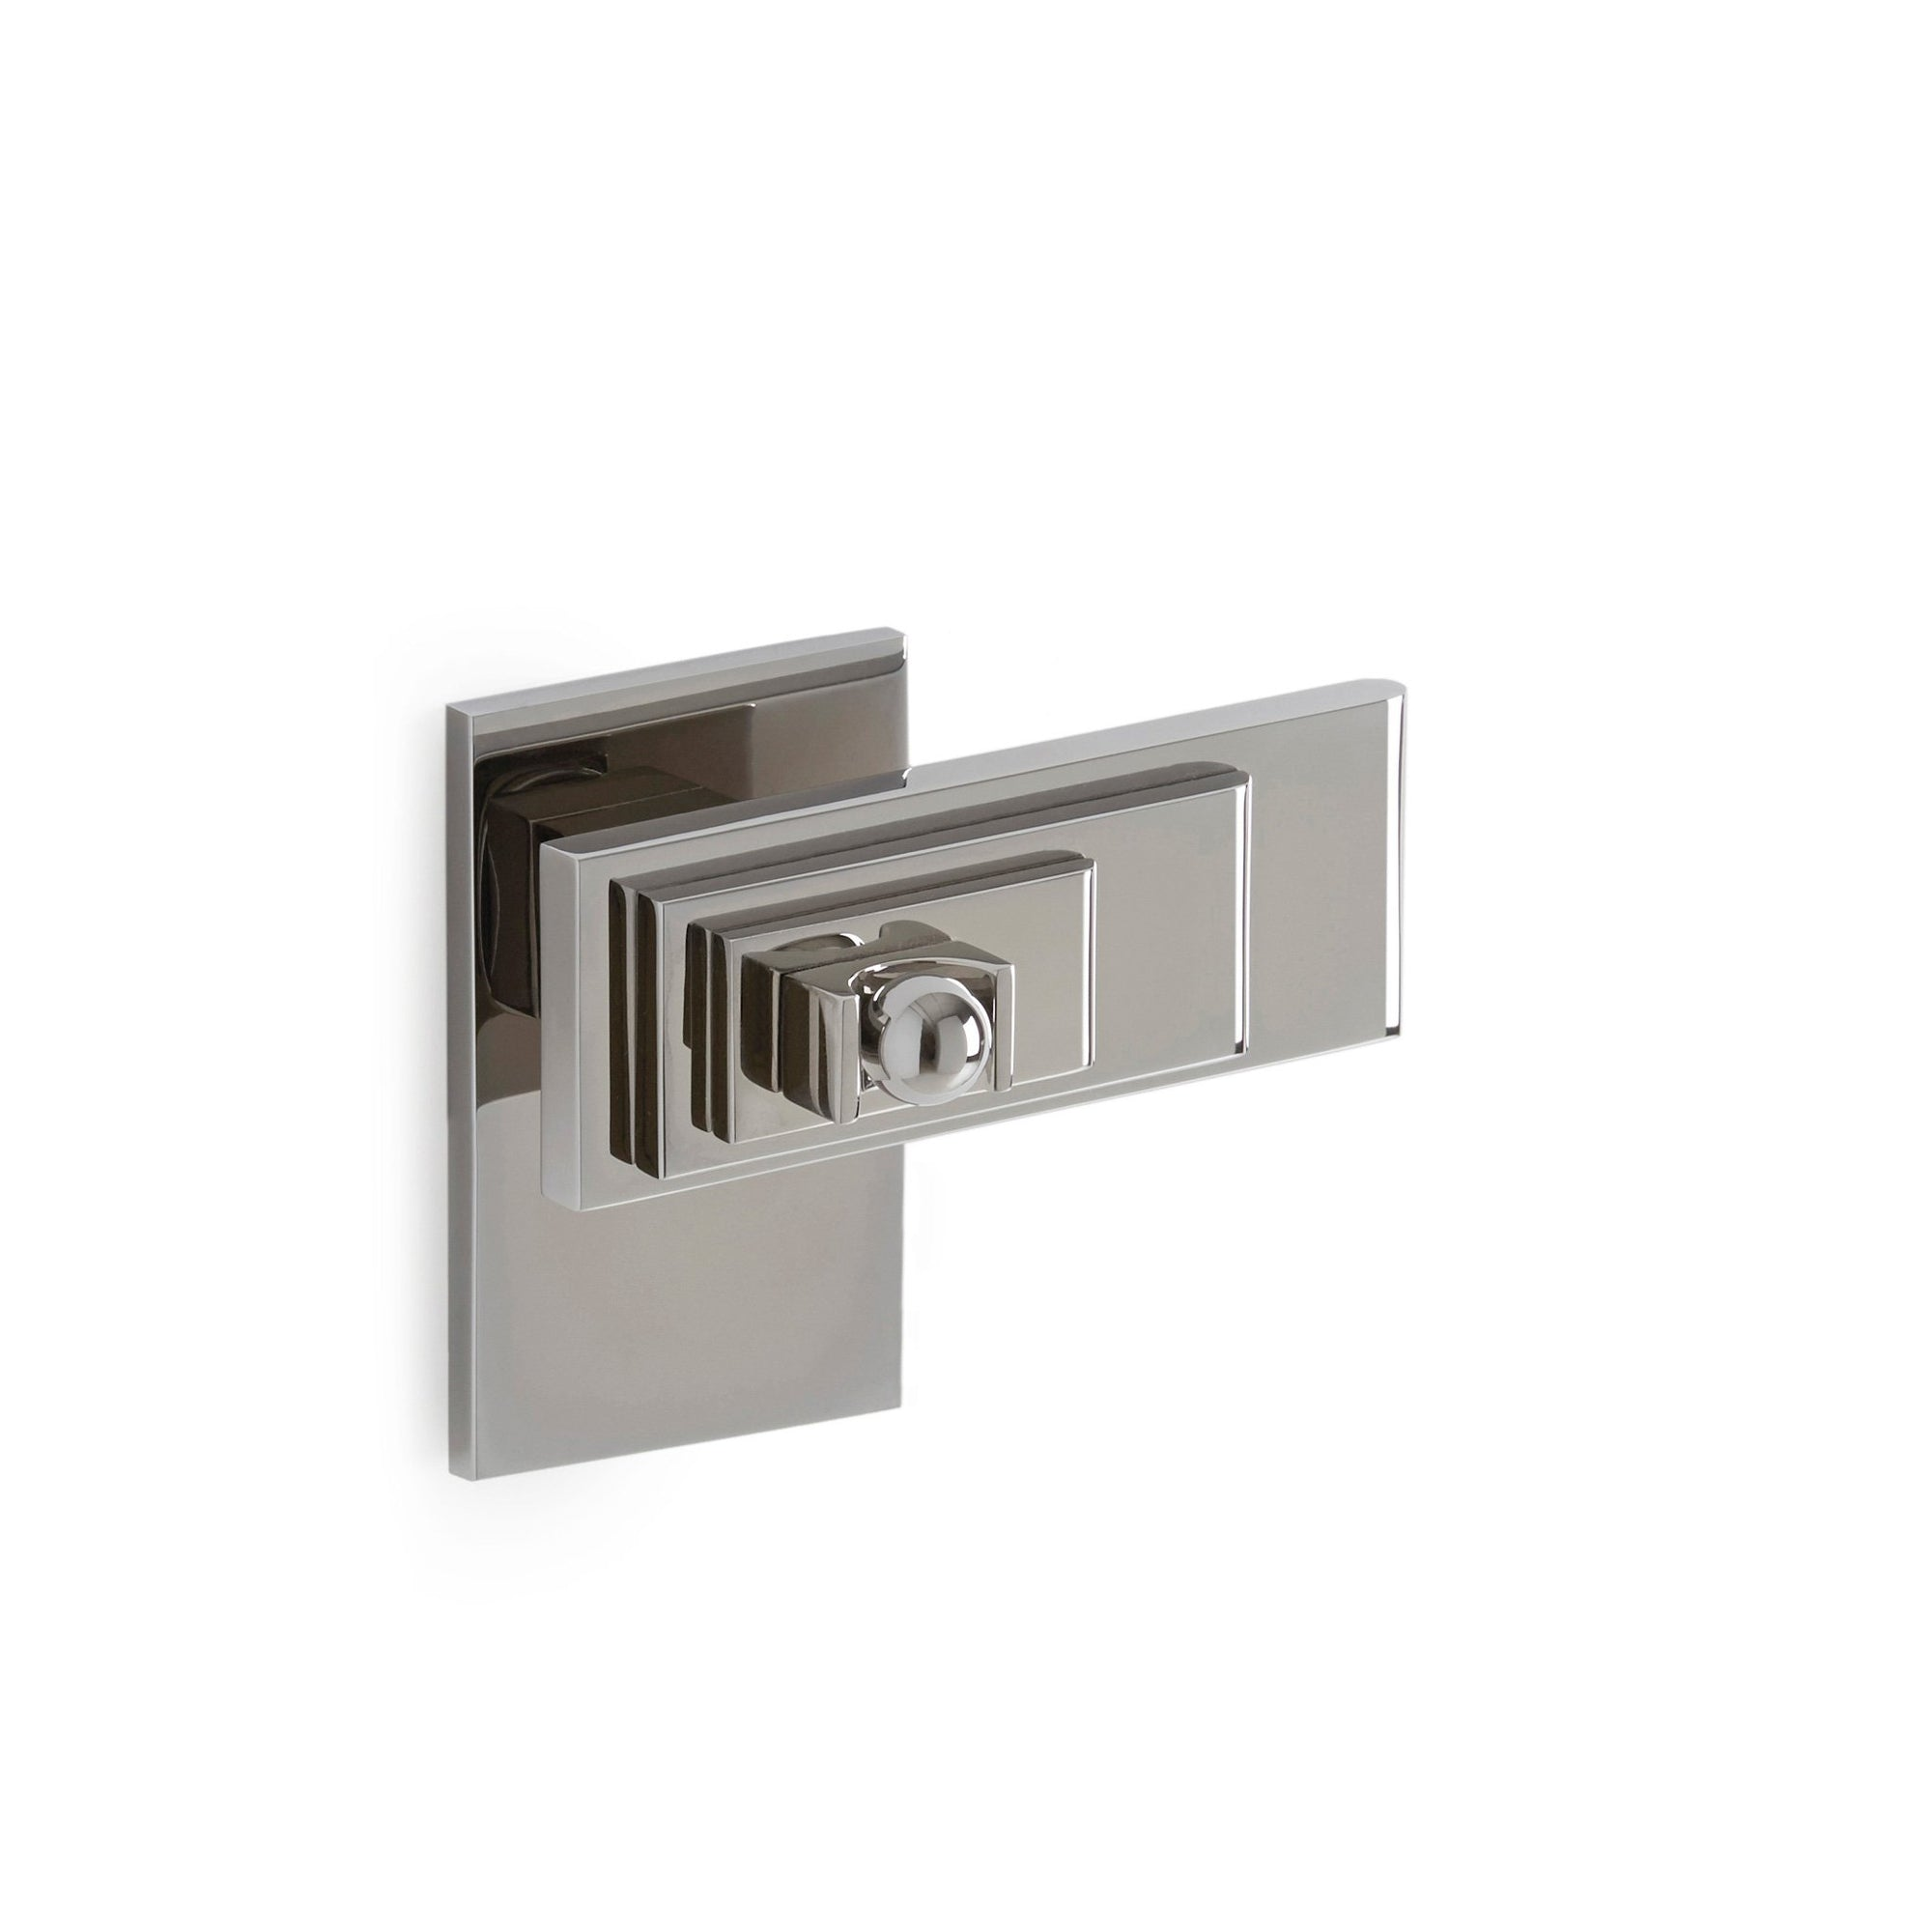 2010DOR-RH-CP Sherle Wagner International Nouveau Door Lever in Polished Chrome metal finish